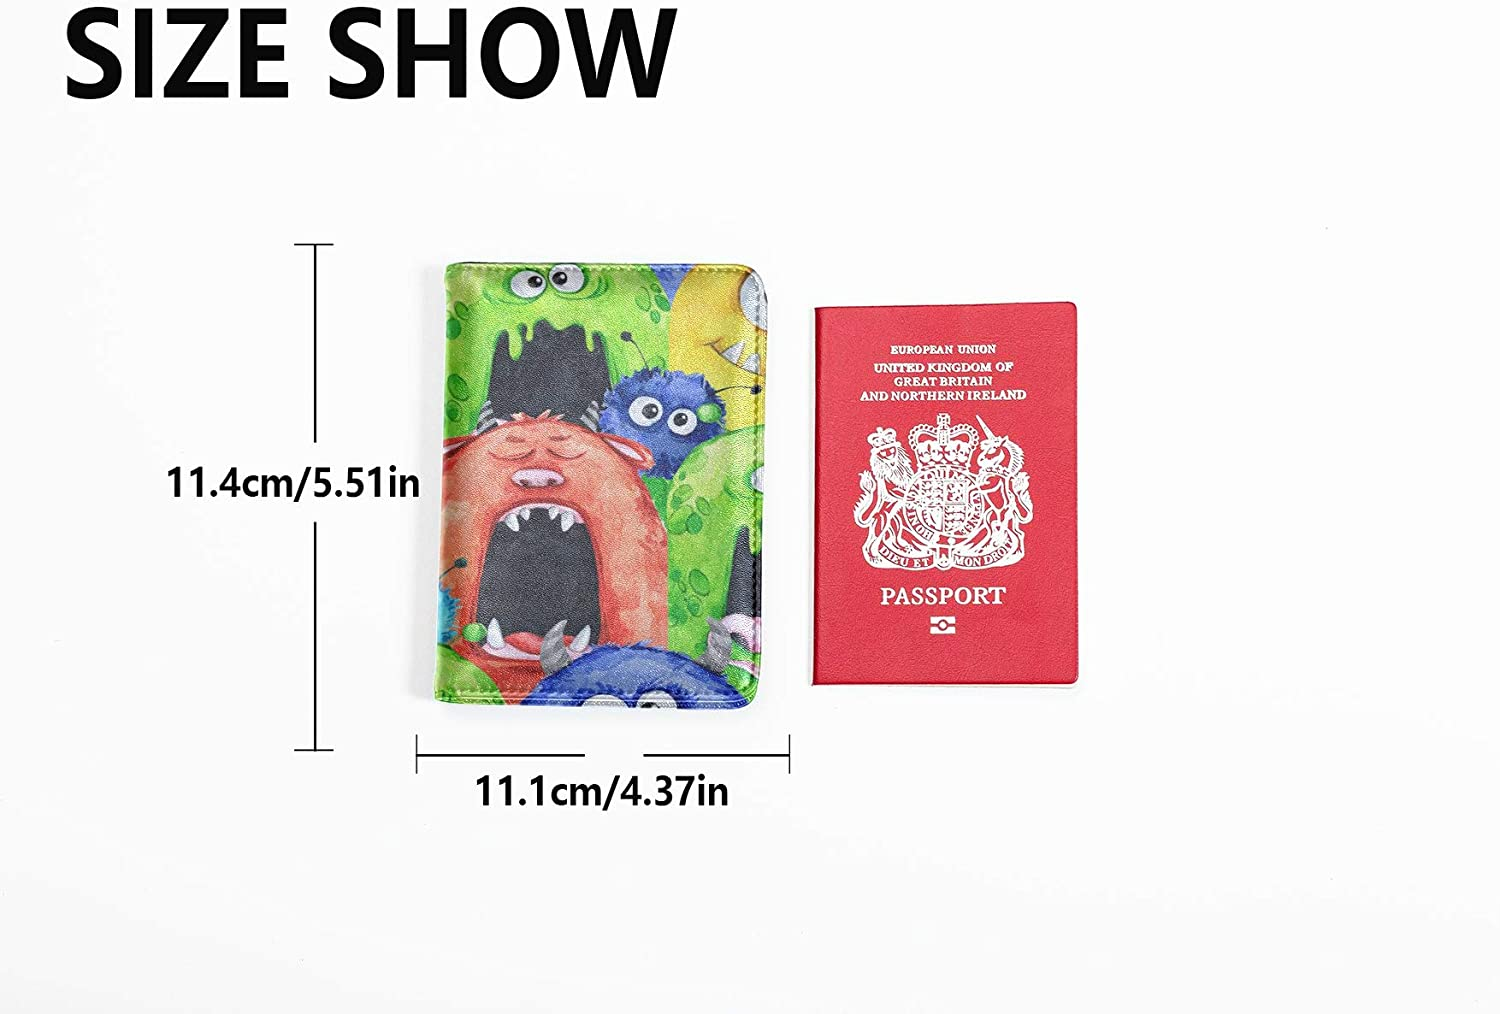 Passport Cover Waterproof Cute Personification Cartoon Image Hard Case Passport Holder Multi Purpose Print Case For Passport Travel Wallets For Unisex 5.51x4.37 Inch